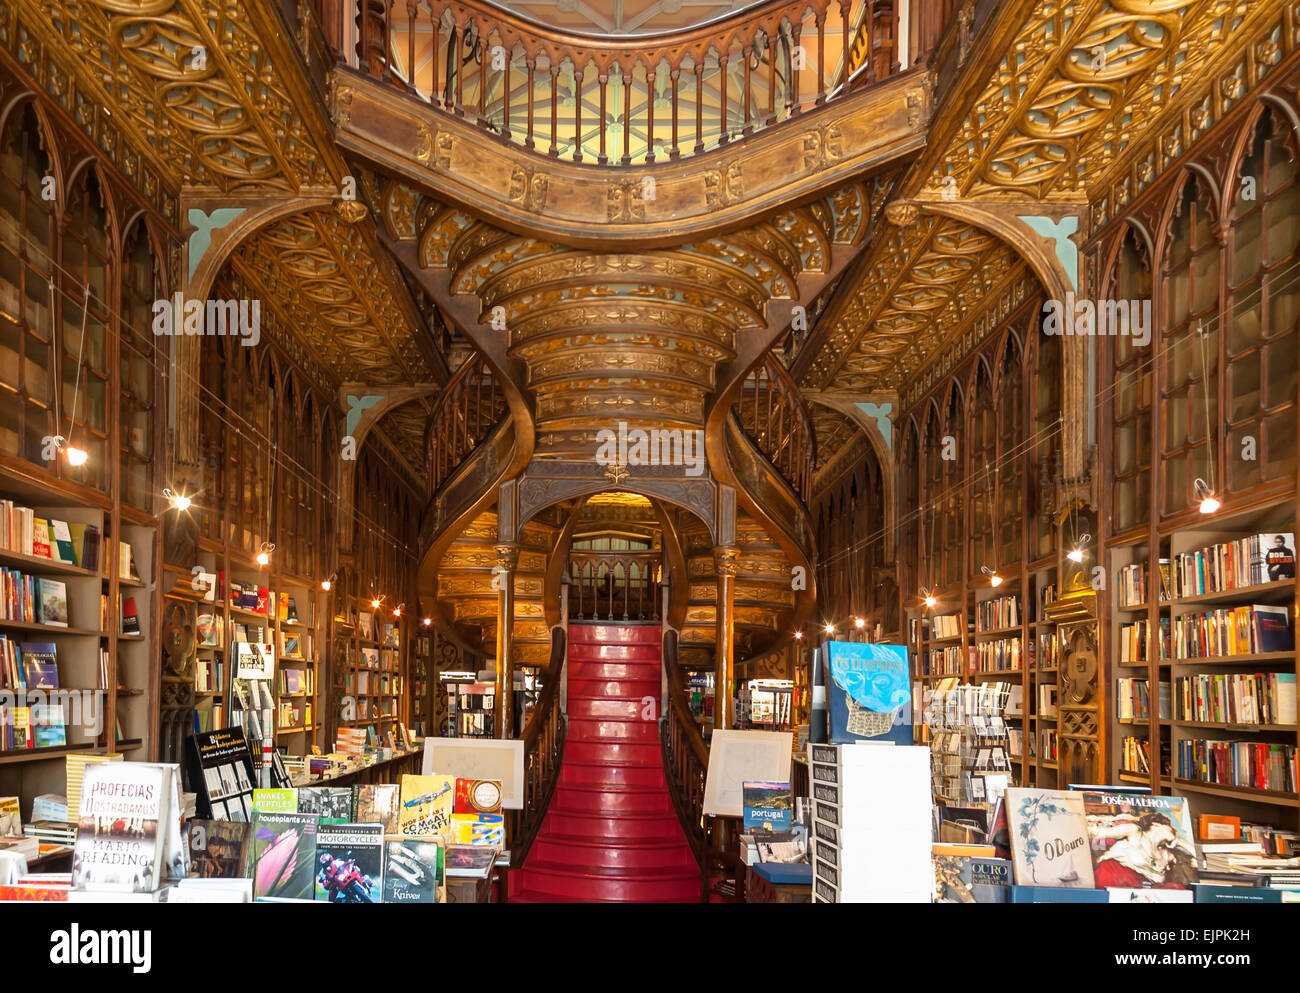 Librería Lello E Irmao Lello E Irmao Stock Photos Lello E Irmao Stock Images Alamy